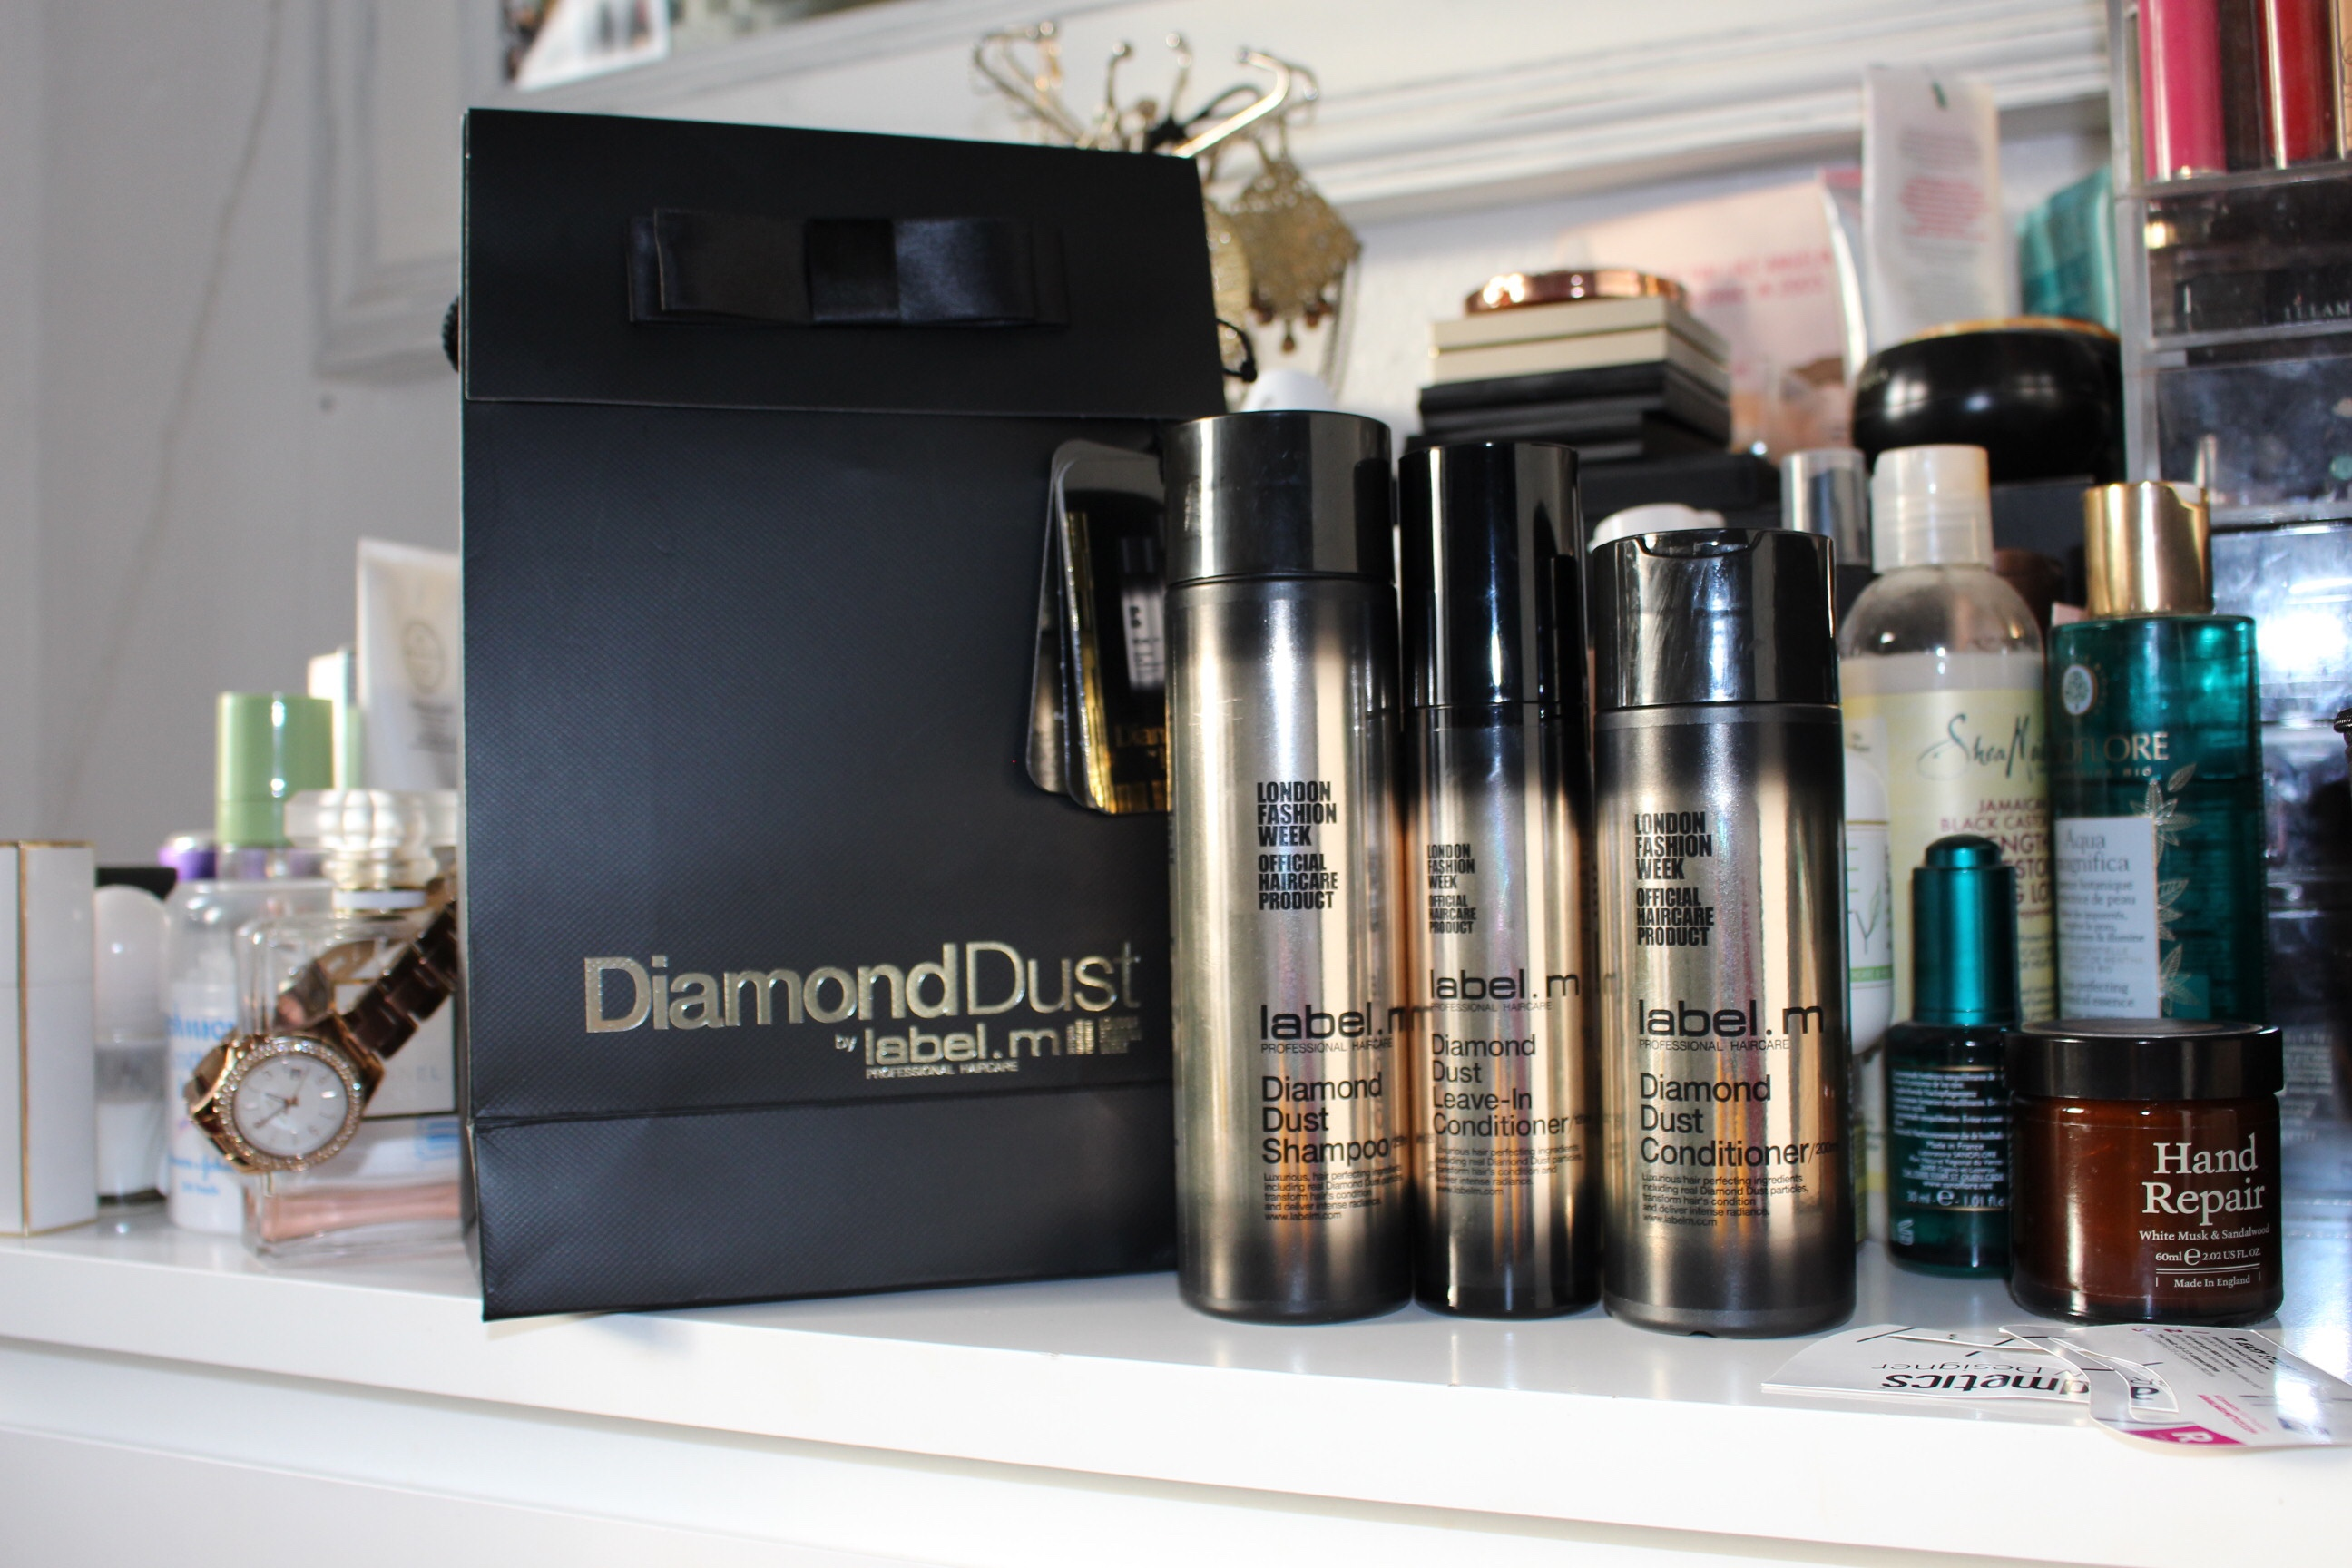 raychel-says-Christmas-gift-guide-diamond-dust-hair-care